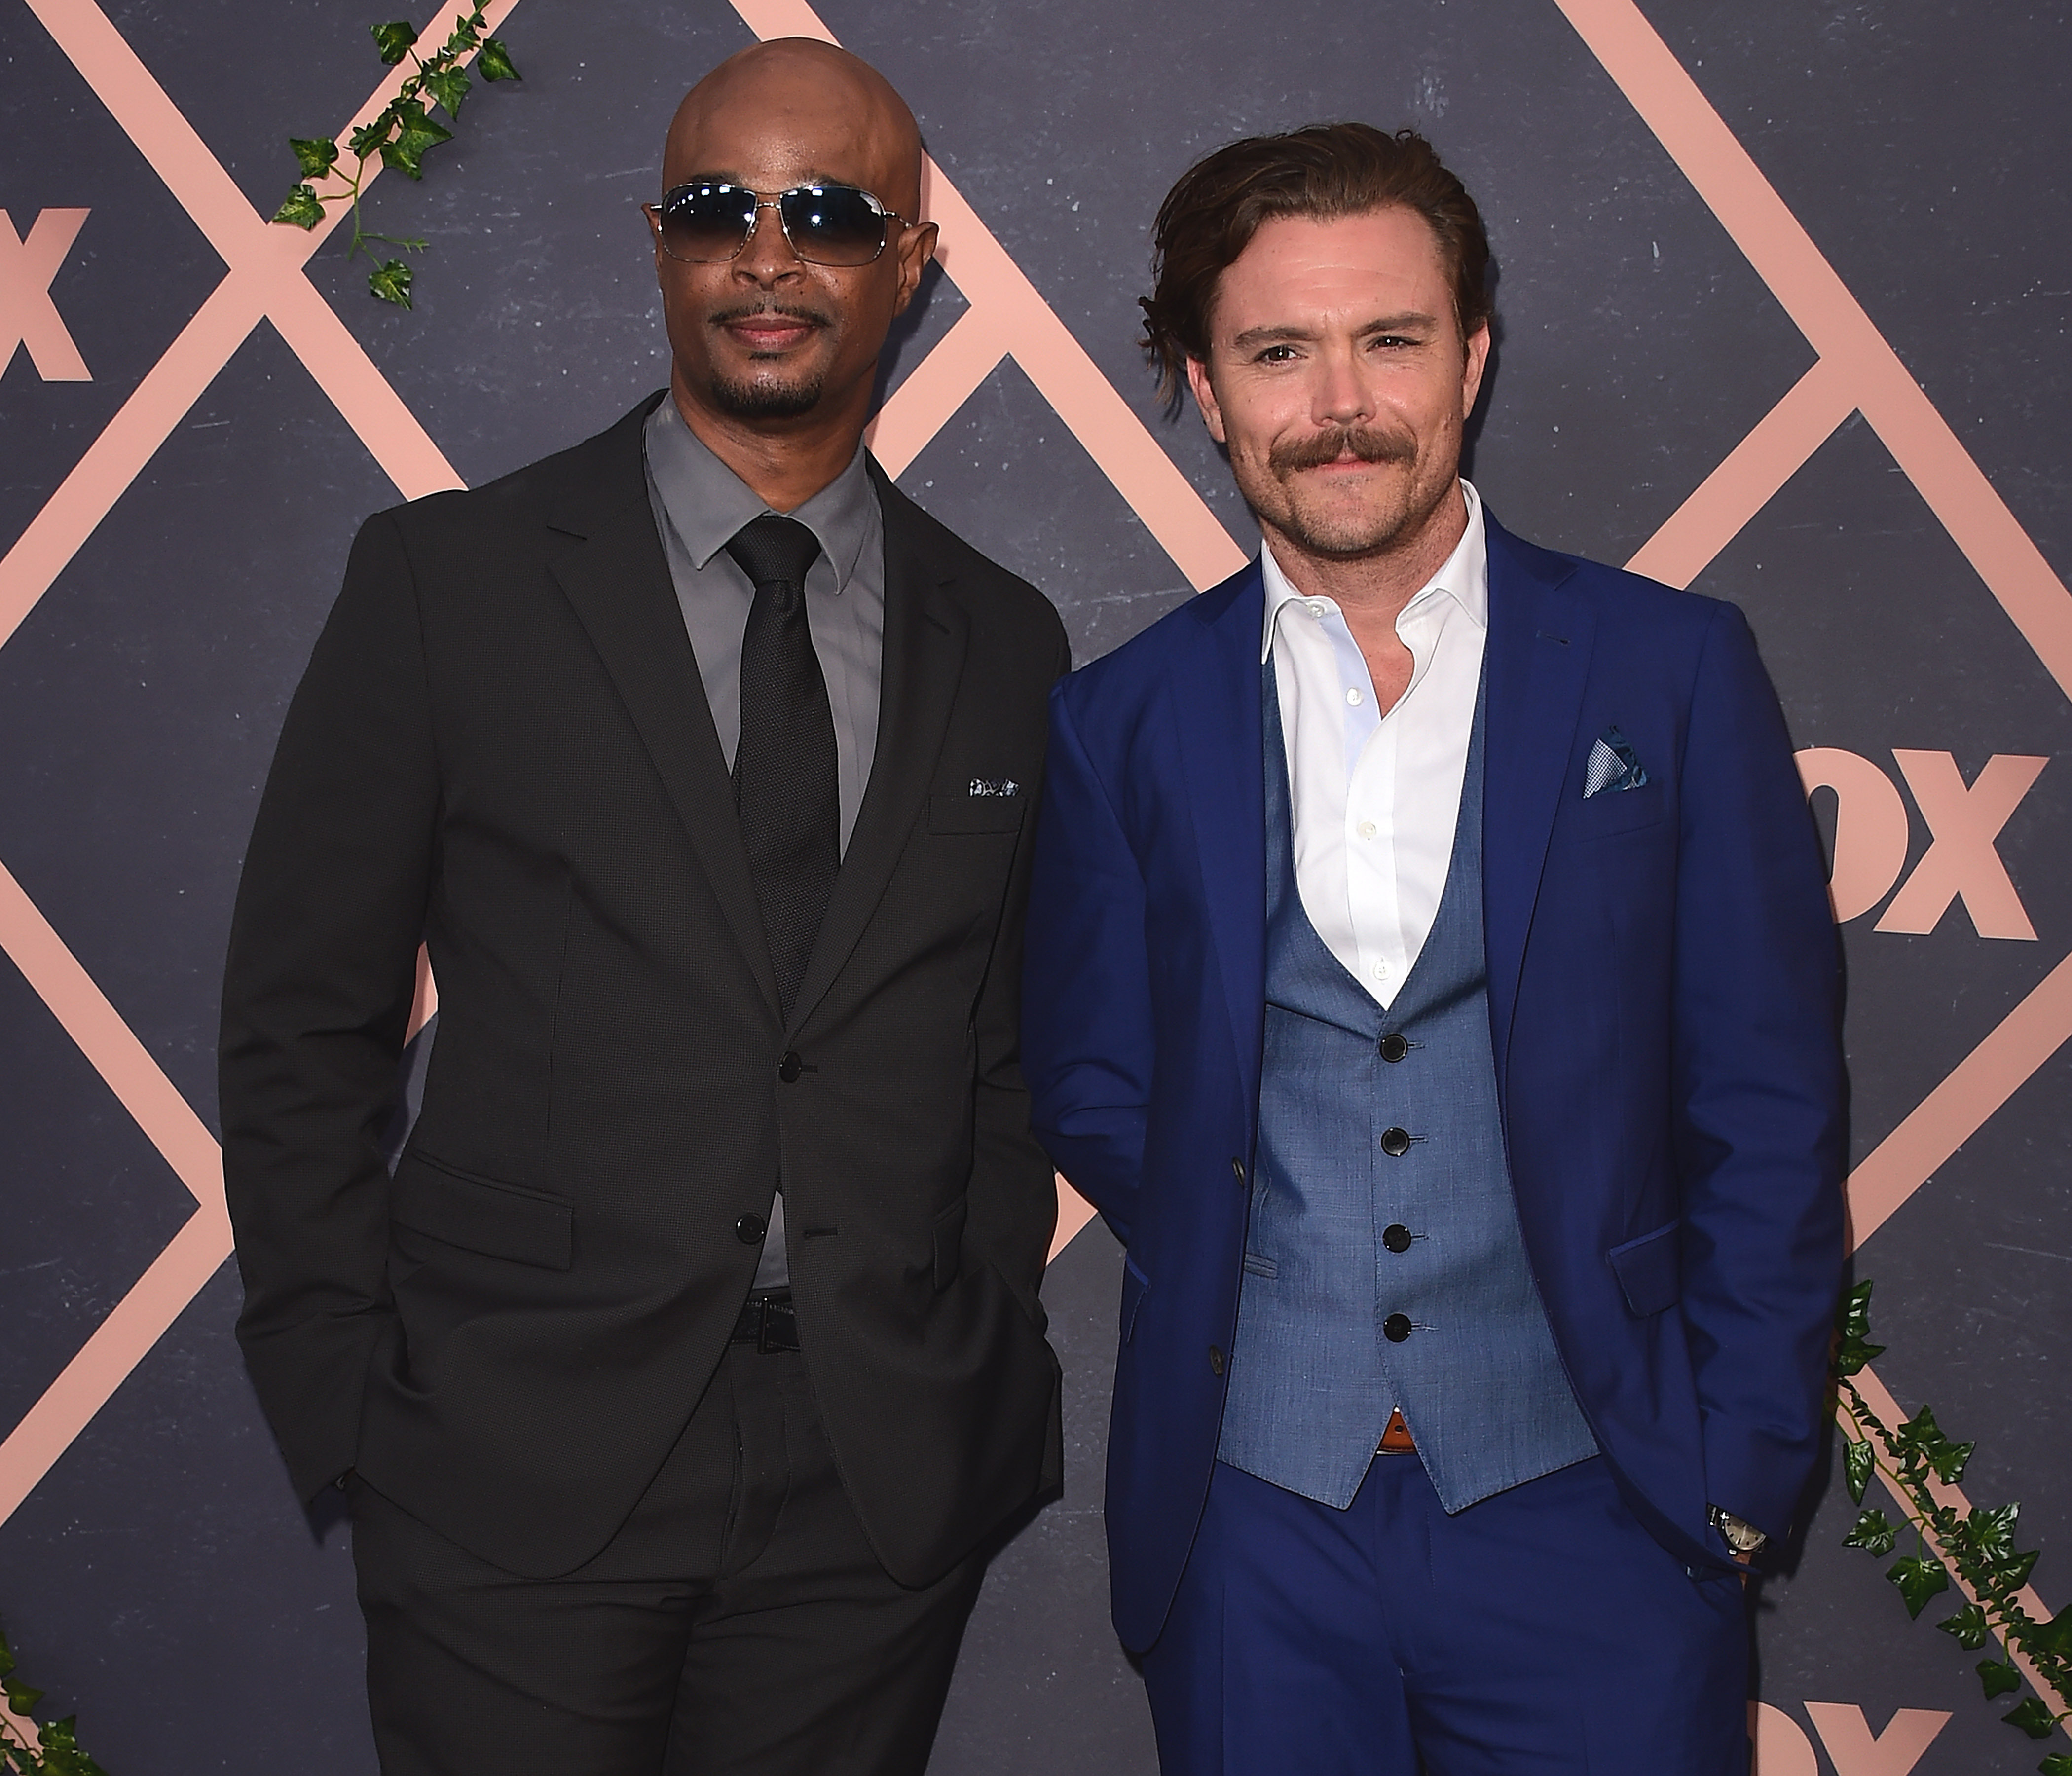 Clayne Crawford and Damon Wayans. Credit: PA